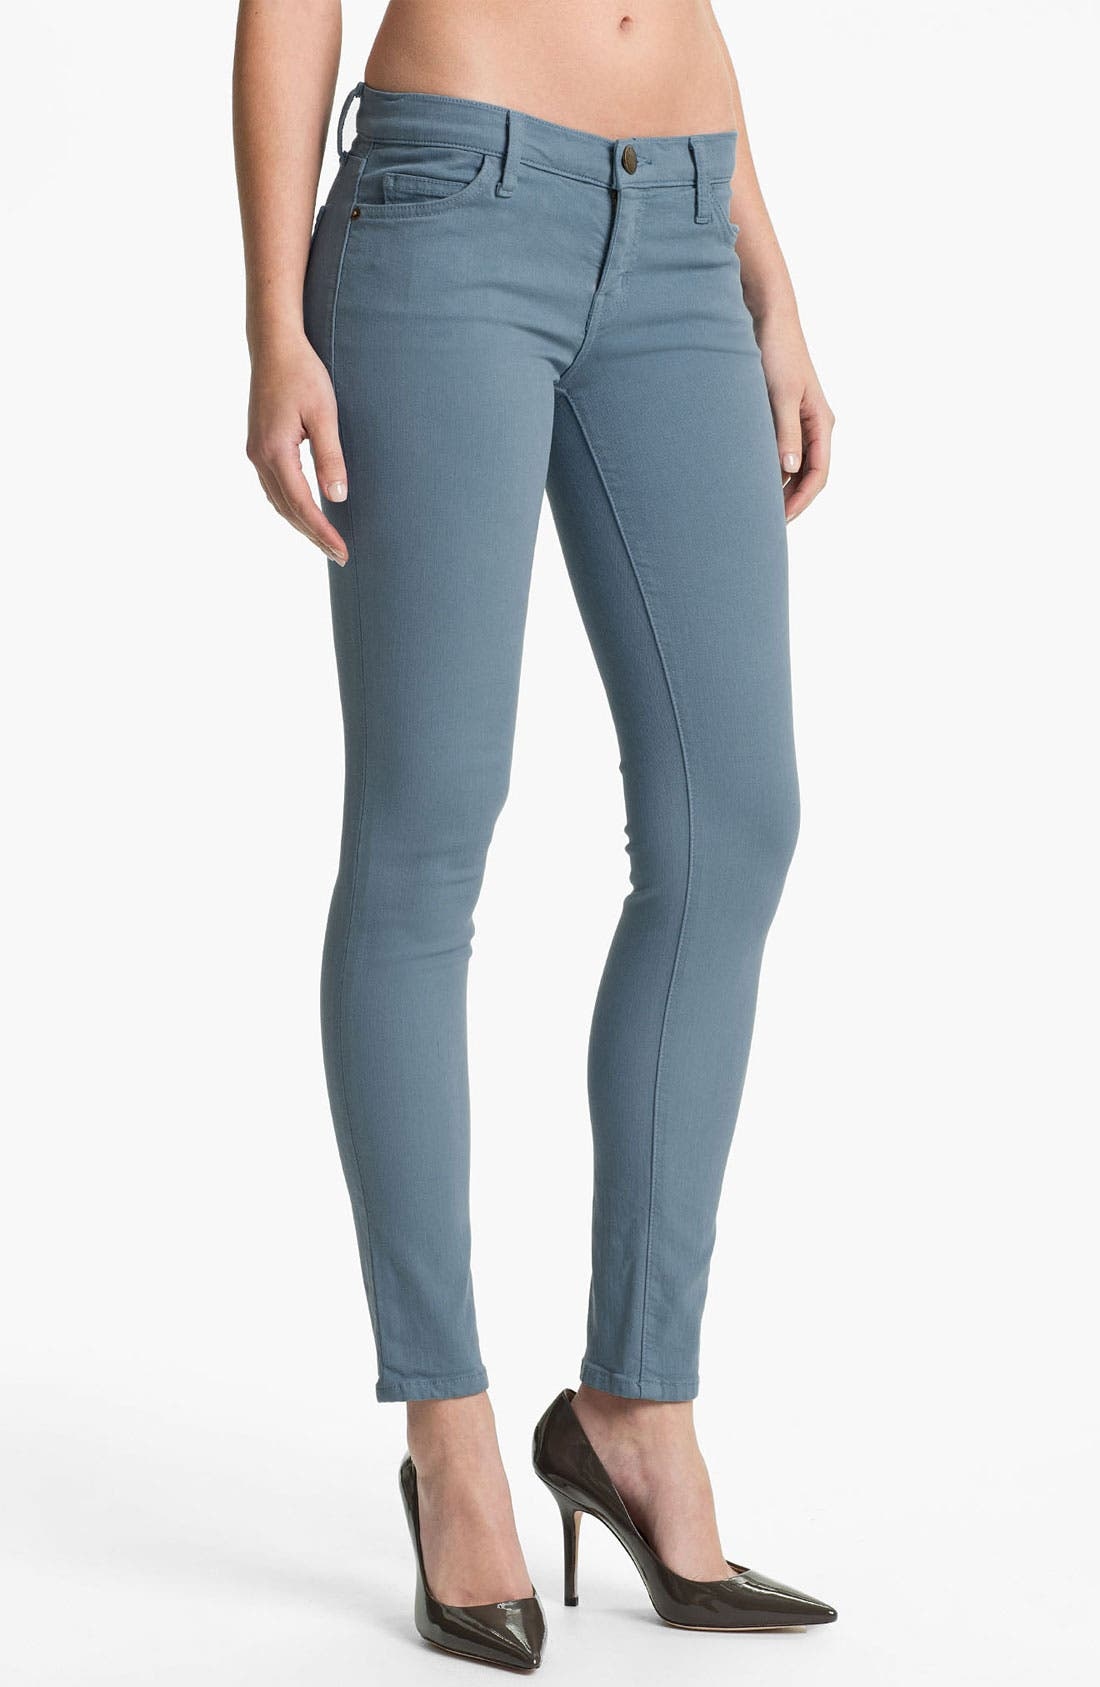 Alternate Image 1 Selected - Current/Elliott Skinny Ankle Jeans